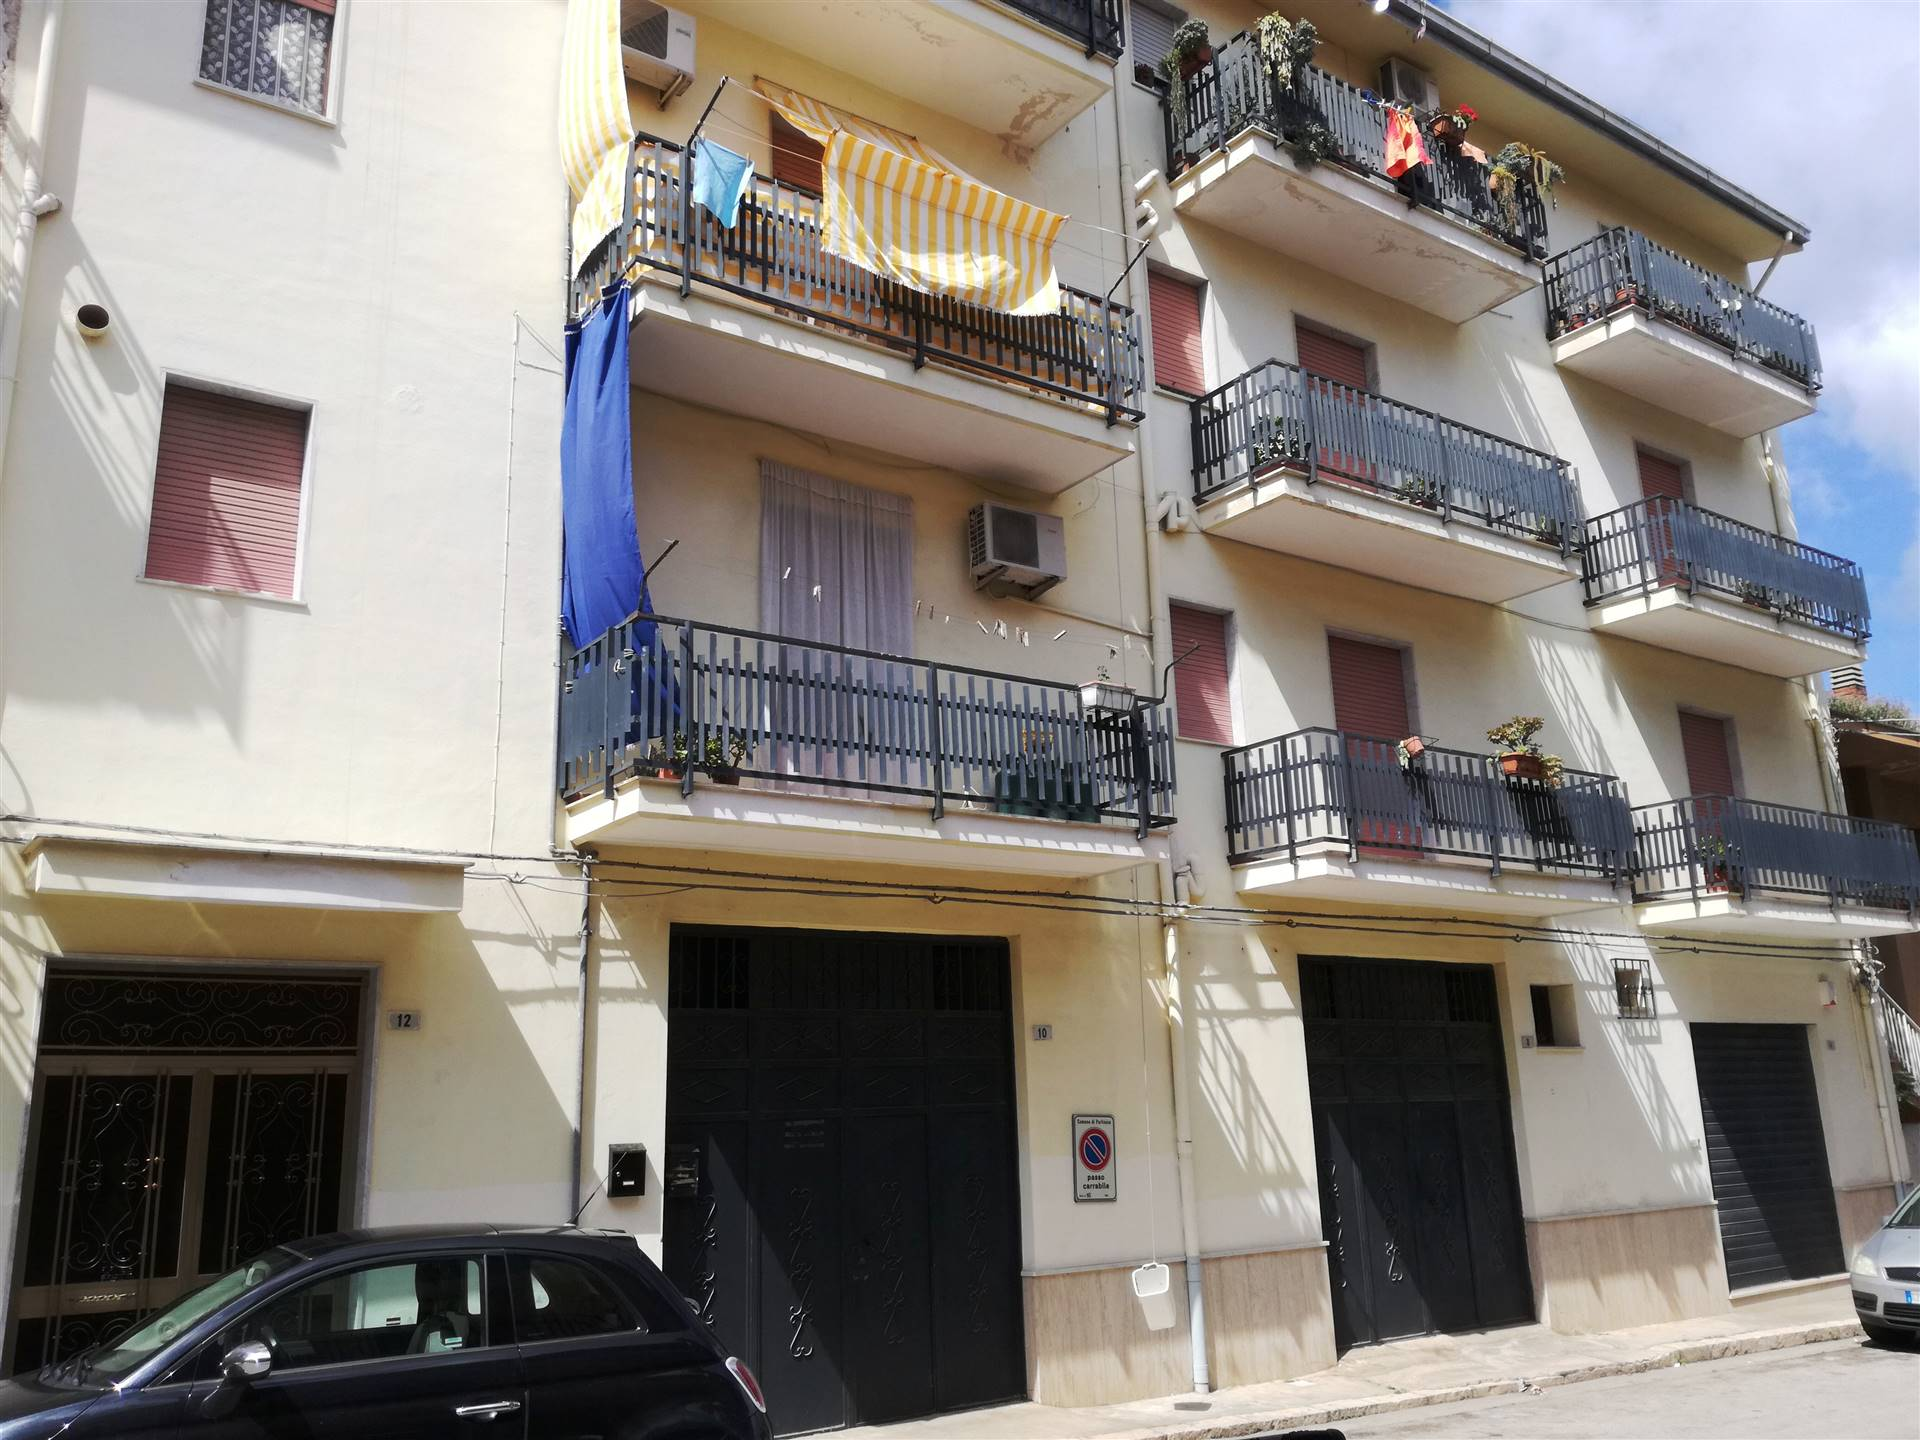 PARTINICO, Apartment for rent, Good condition, Energetic class: G, Epi: 175 kwh/m2 year, placed at 2° on 3, composed by: 7 Rooms, Separate kitchen, ,